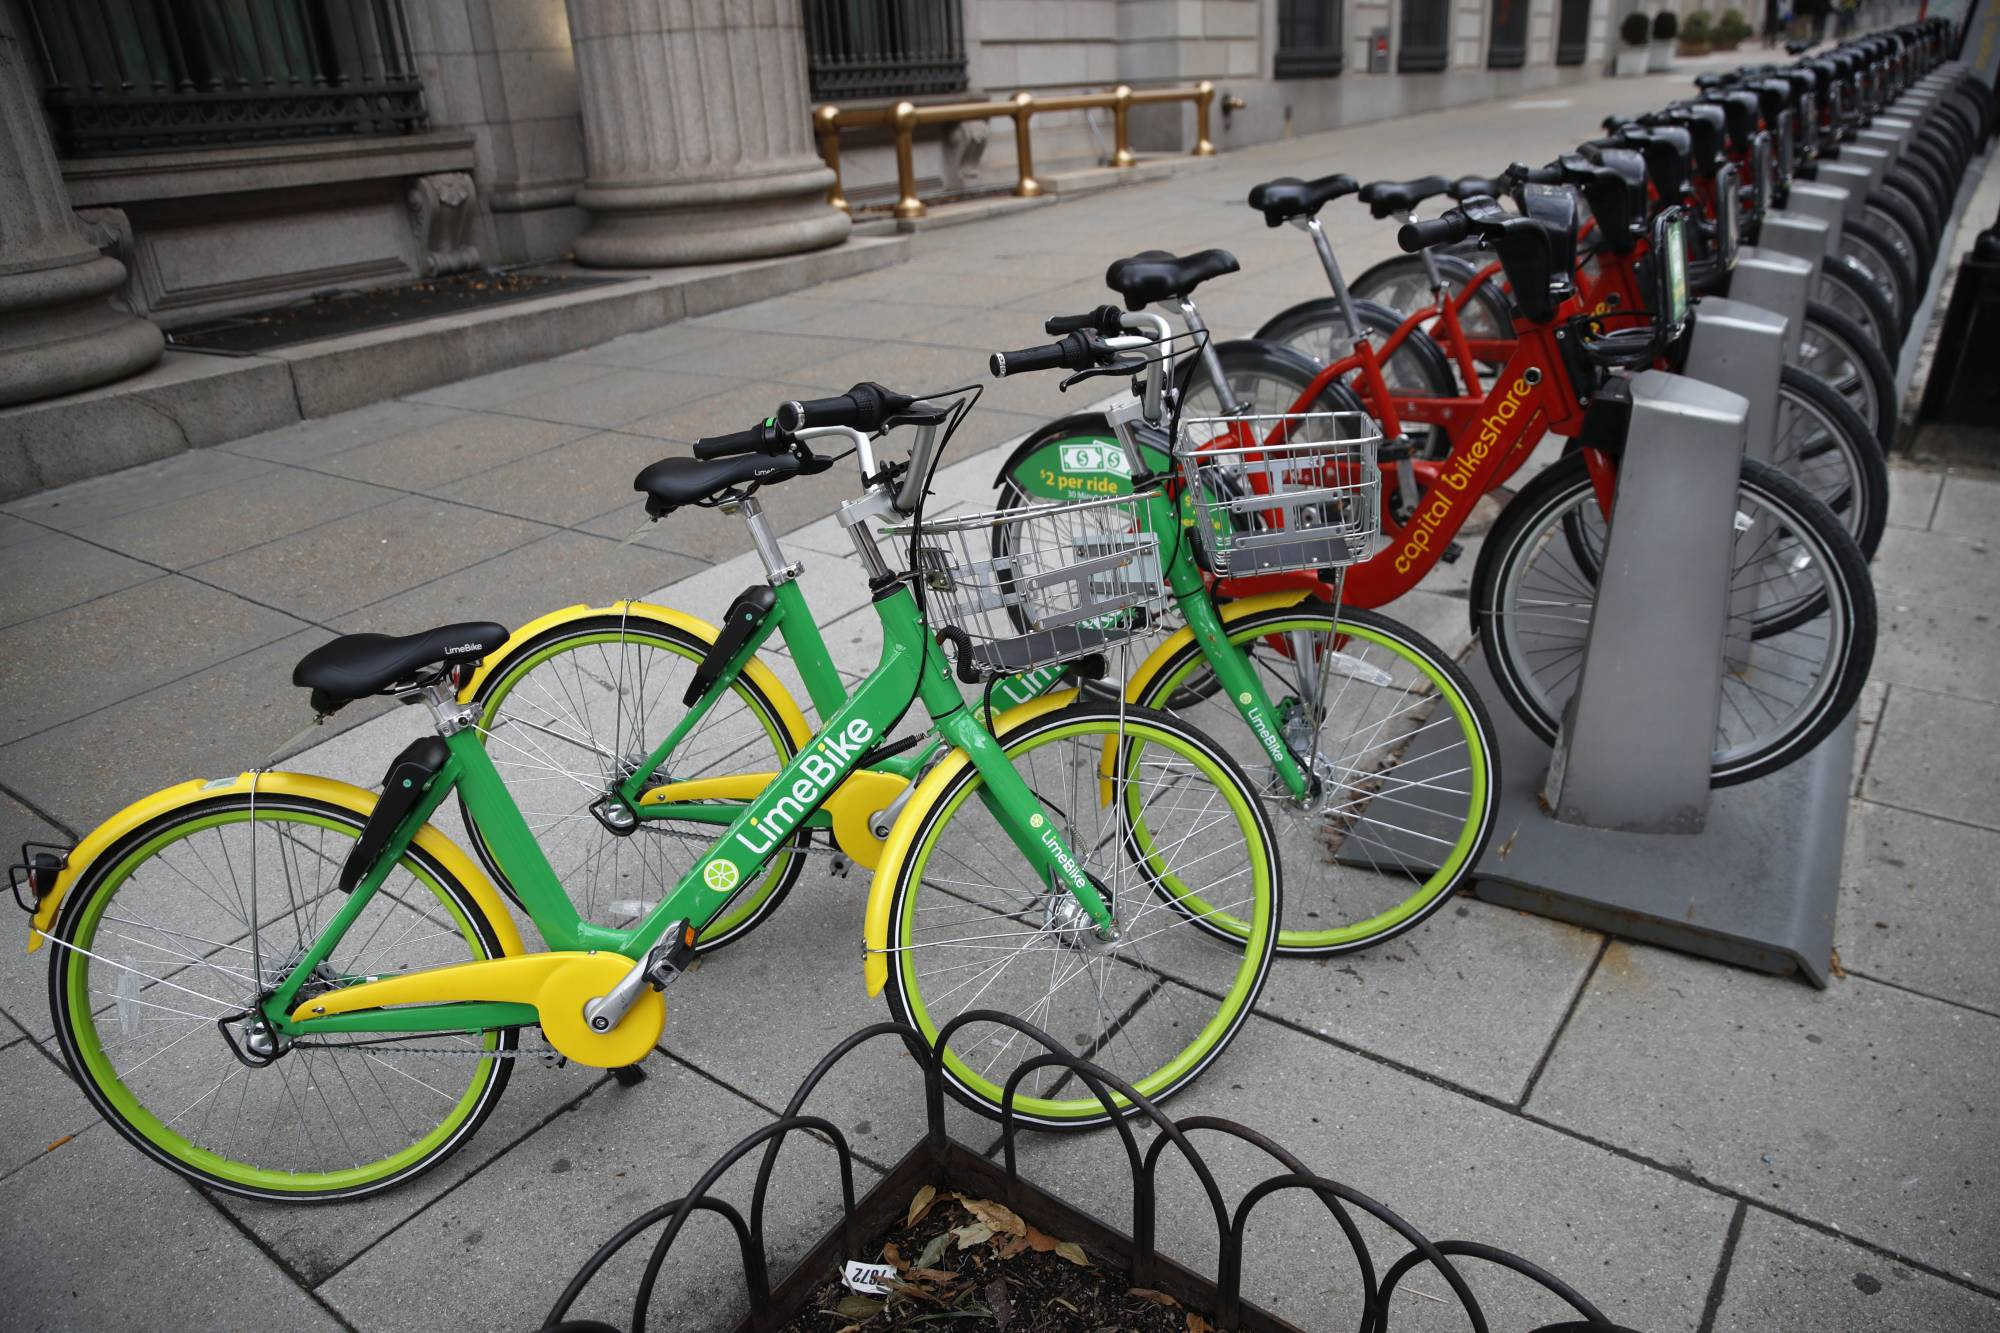 EXCLUSIVE: Dockless bike, scooter surge on way as 12